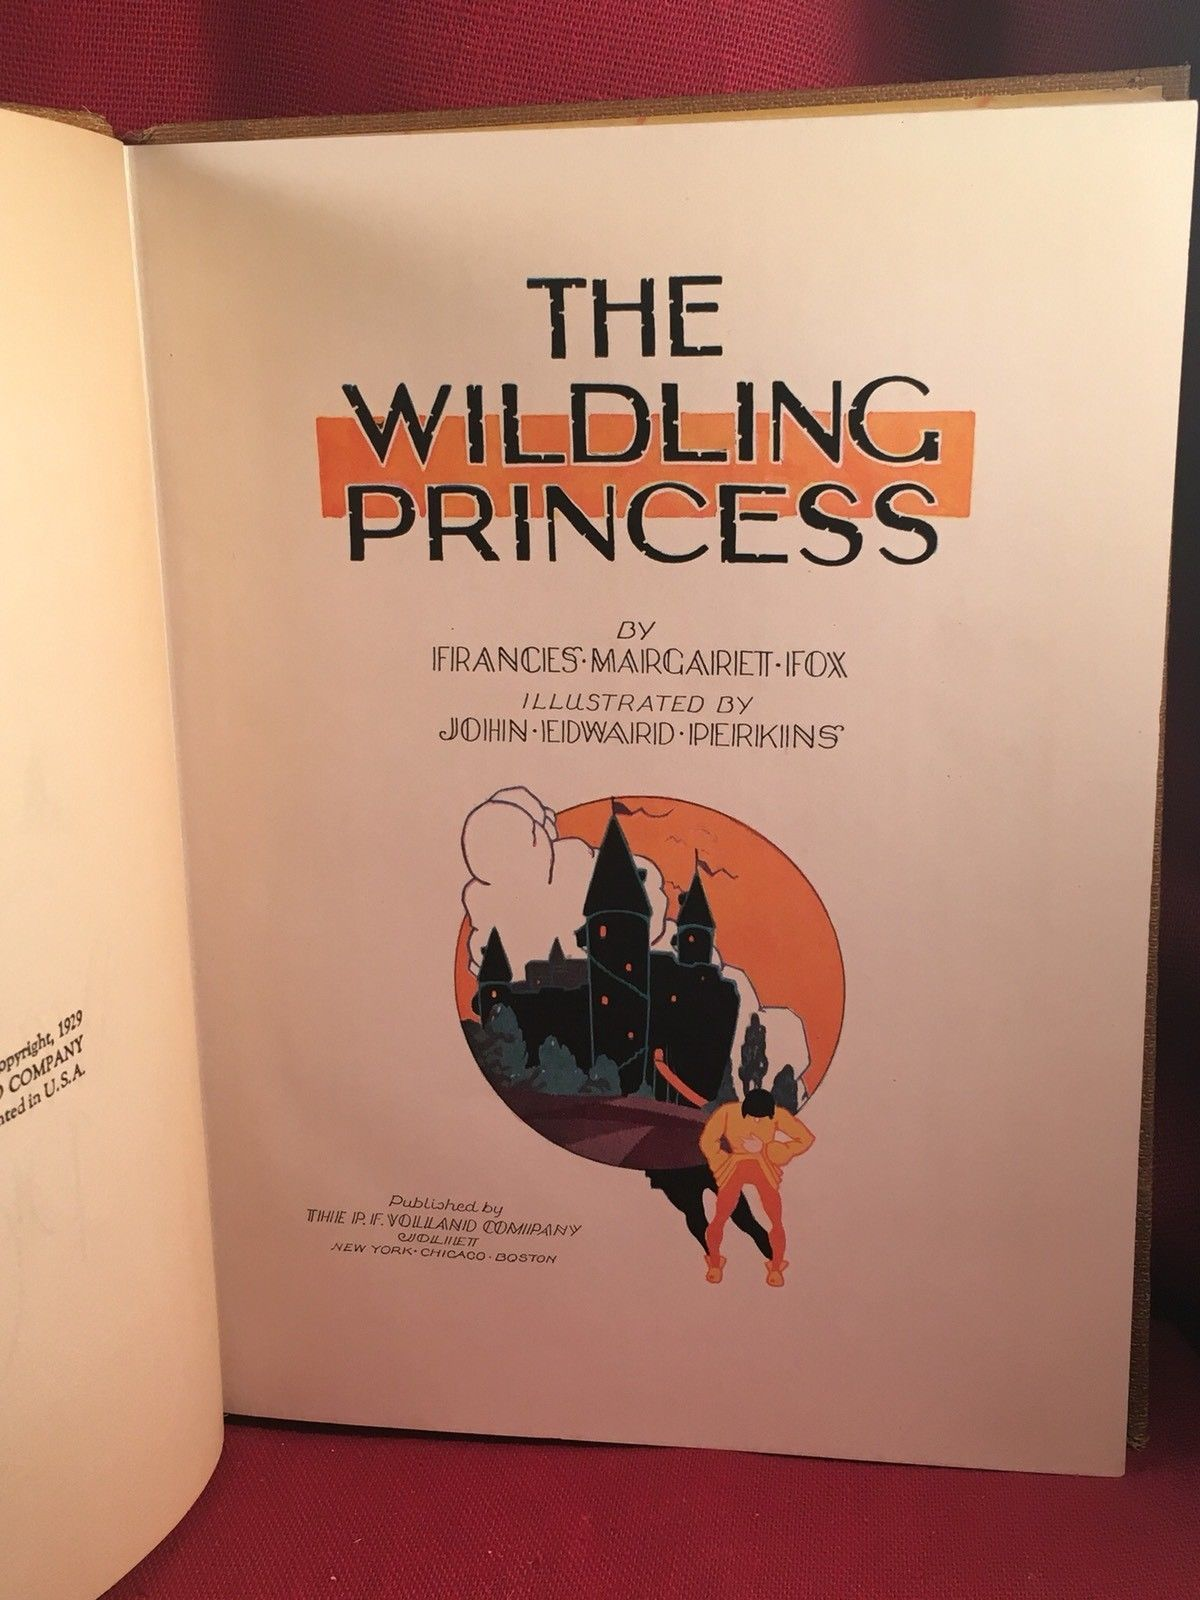 The Wilding Princess by Frances Margaret Fox